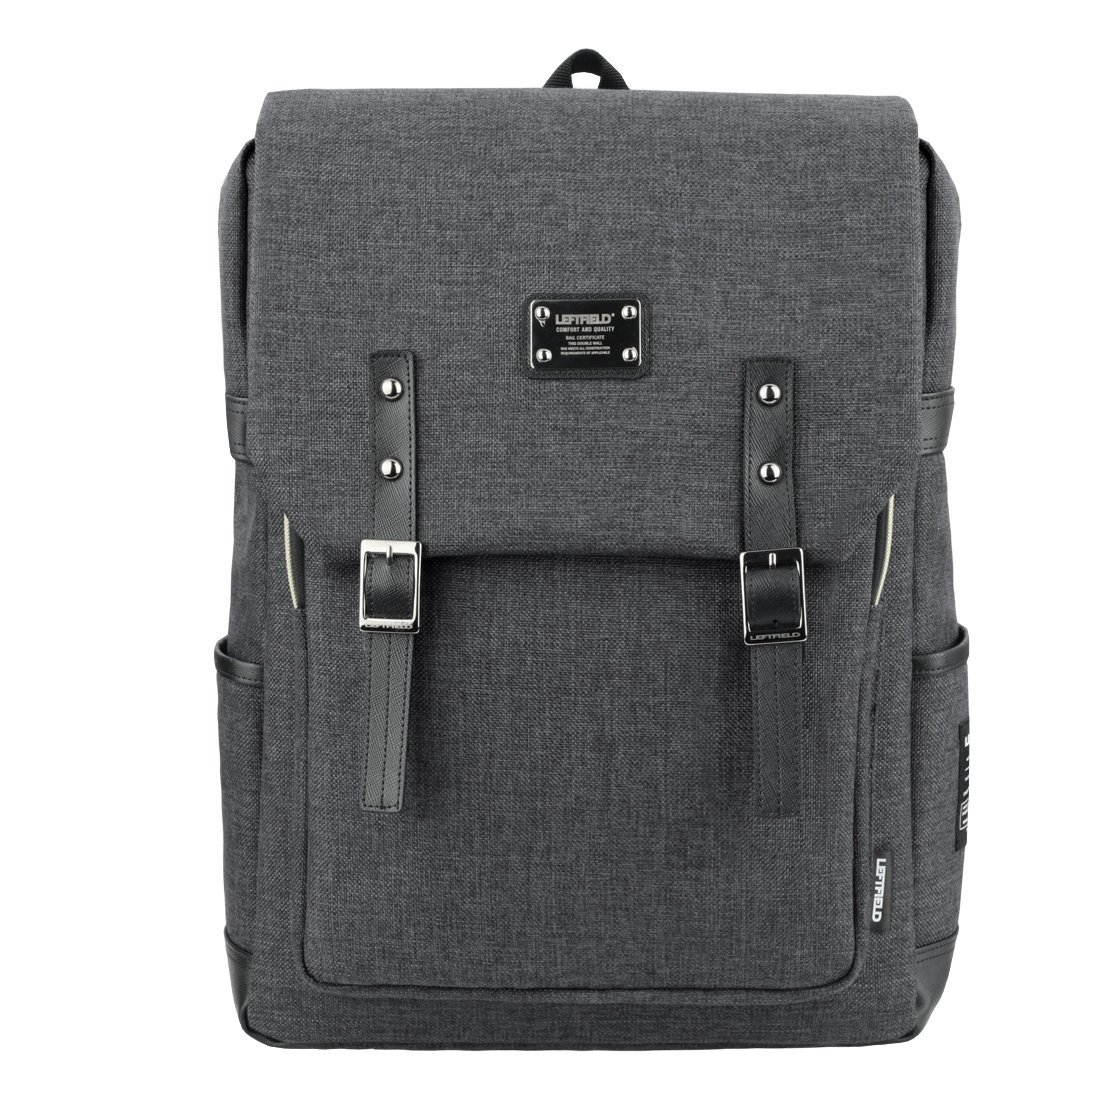 AmazonBasics Laptop & Tablet Bag Convenient, comfortable, and easy to carry, the AmazonBasics Laptop & Tablet Bag is a slim shoulder bag designed protect and transport to your electronics.